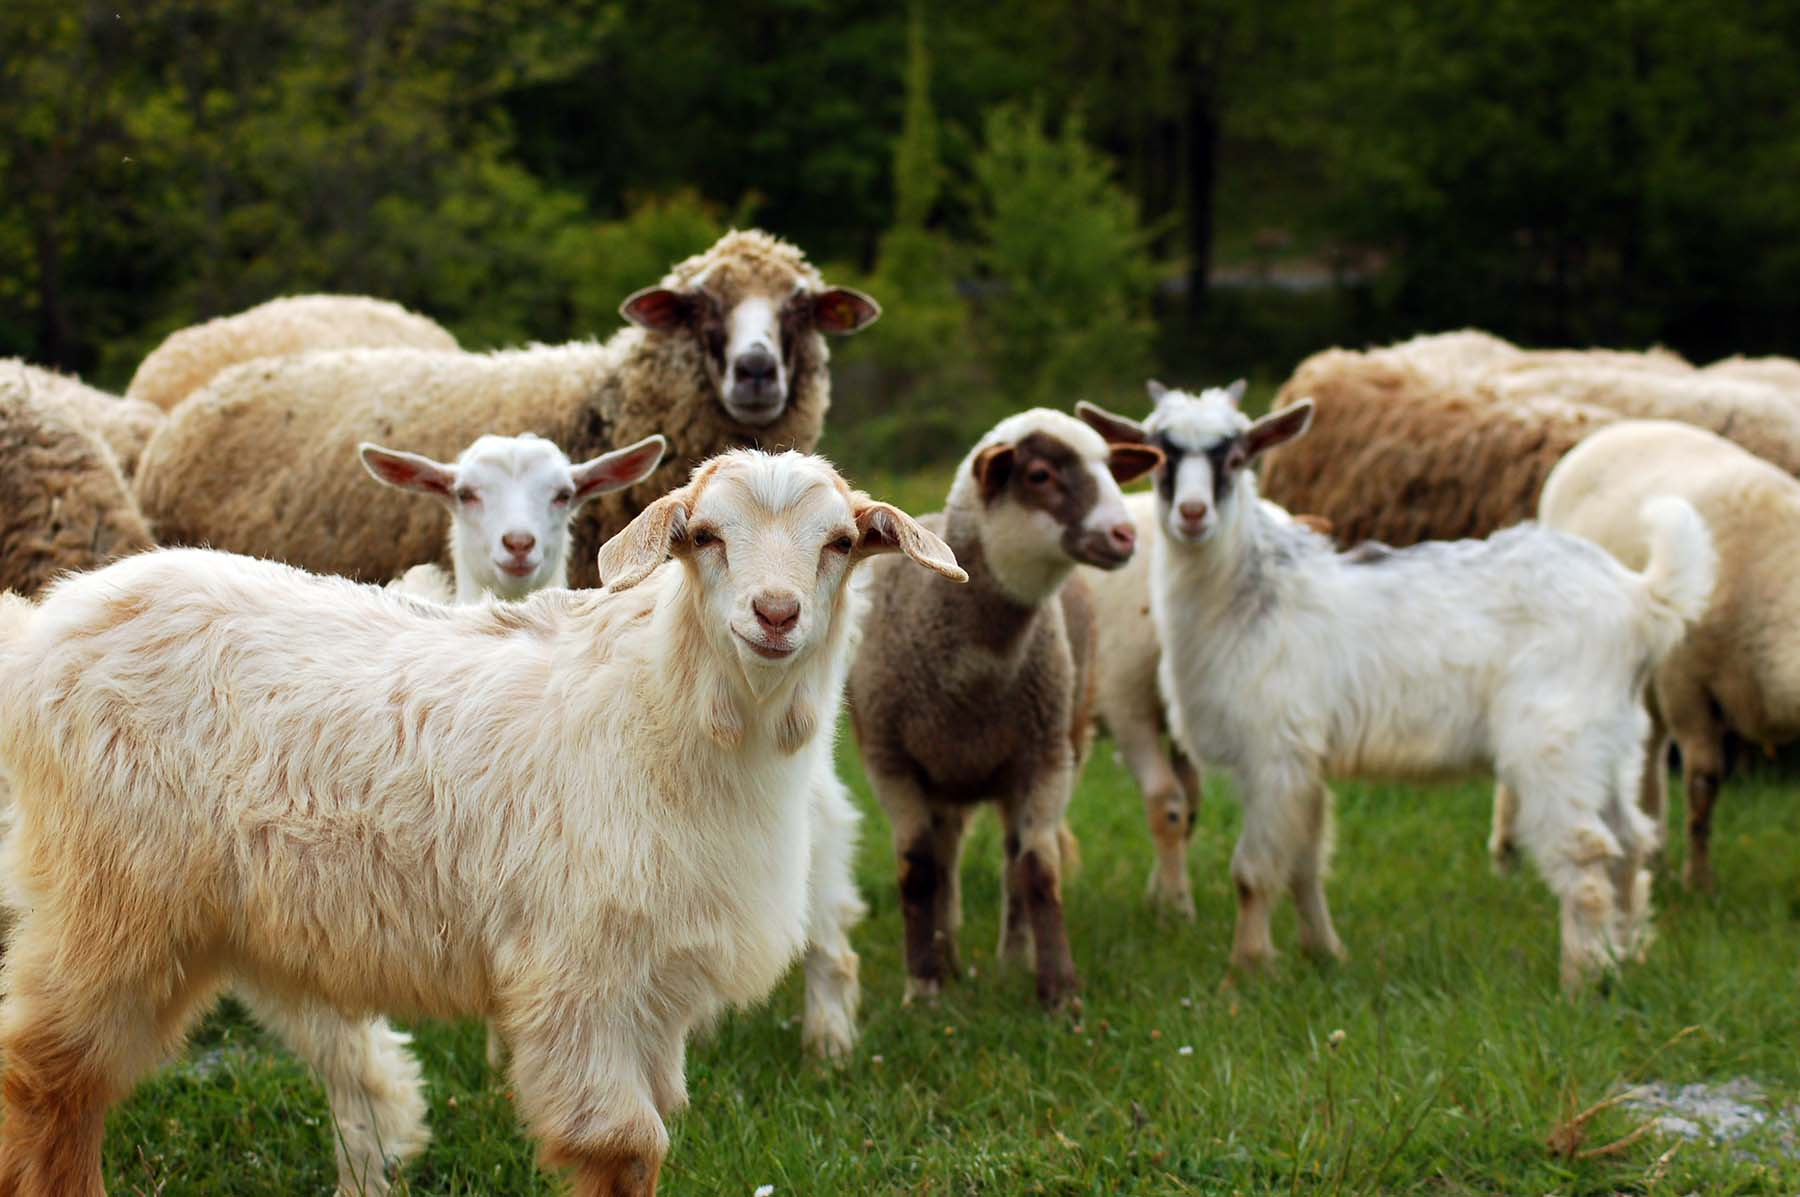 A herd of sheep and goat in a field.